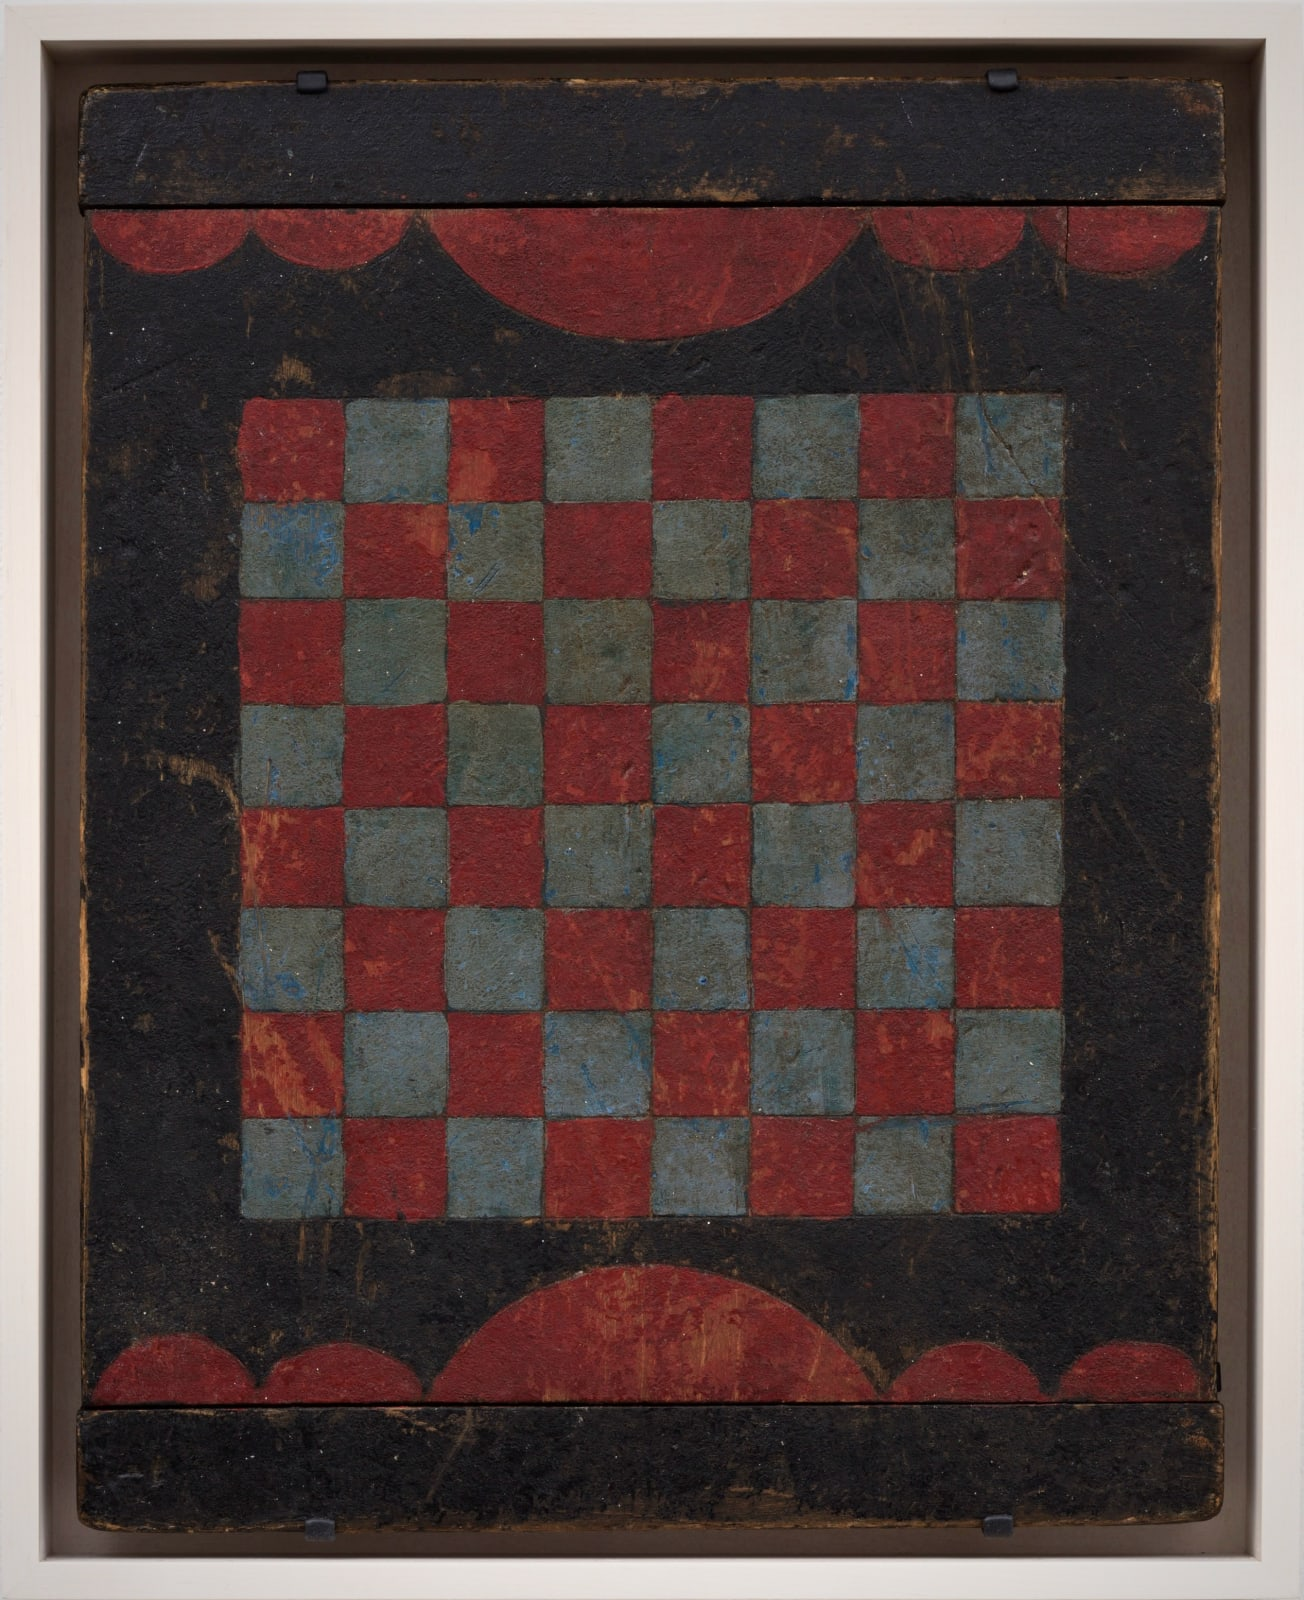 CHECKERS GAME BOARD WITH RED BORDERS, EARLY 20TH CENTURY Oil enamel paint on wood panel 11 x 14 in. 27.9 x 35.6 cm. AU 261